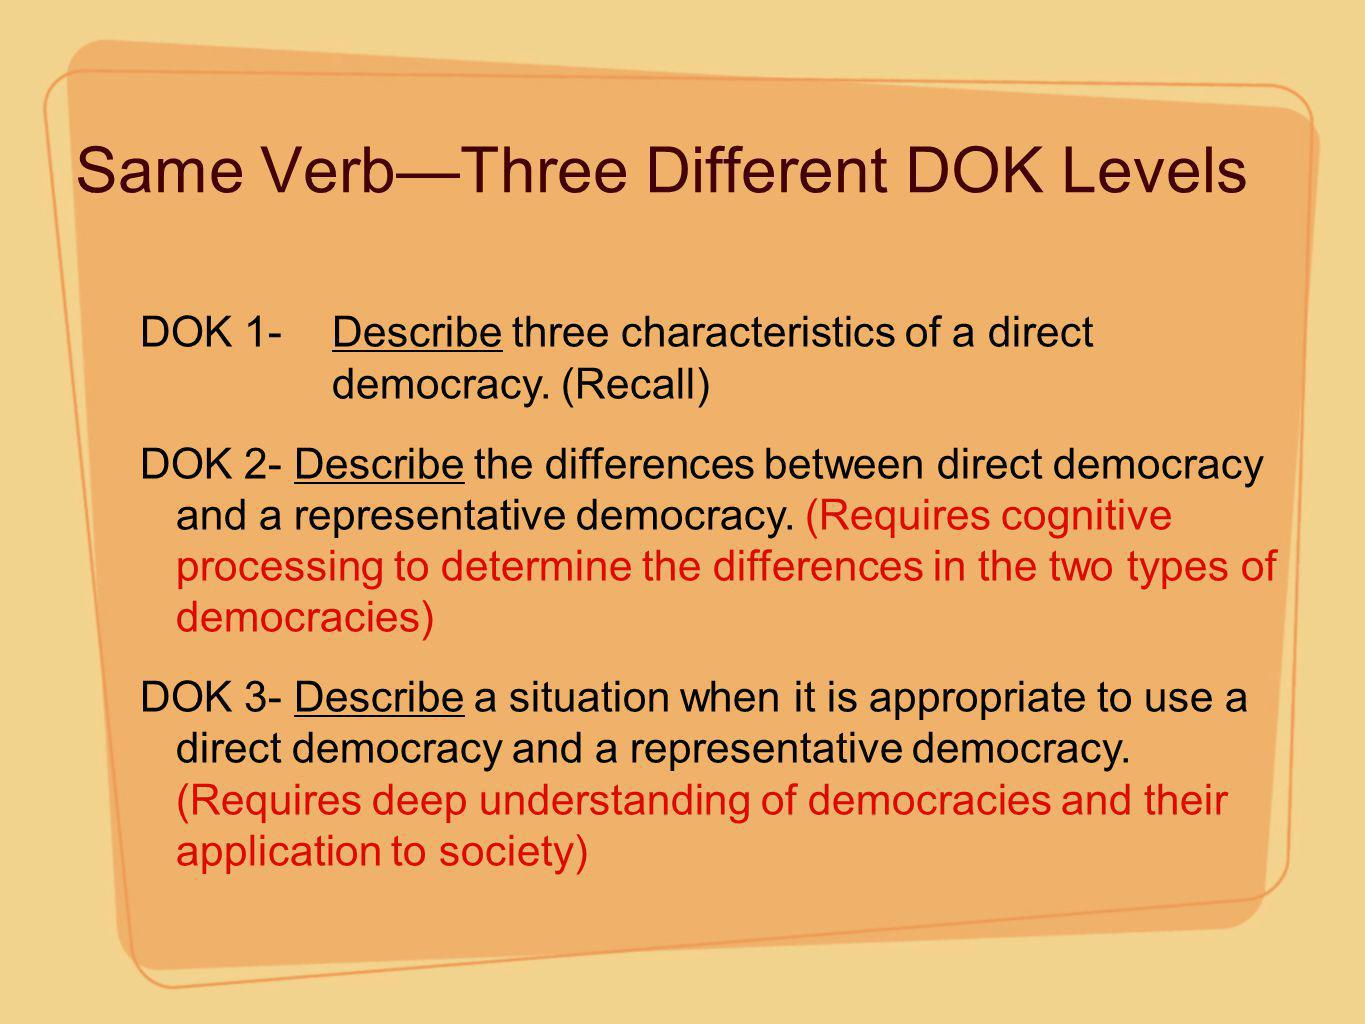 Same Verb—Three Different DOK Levels